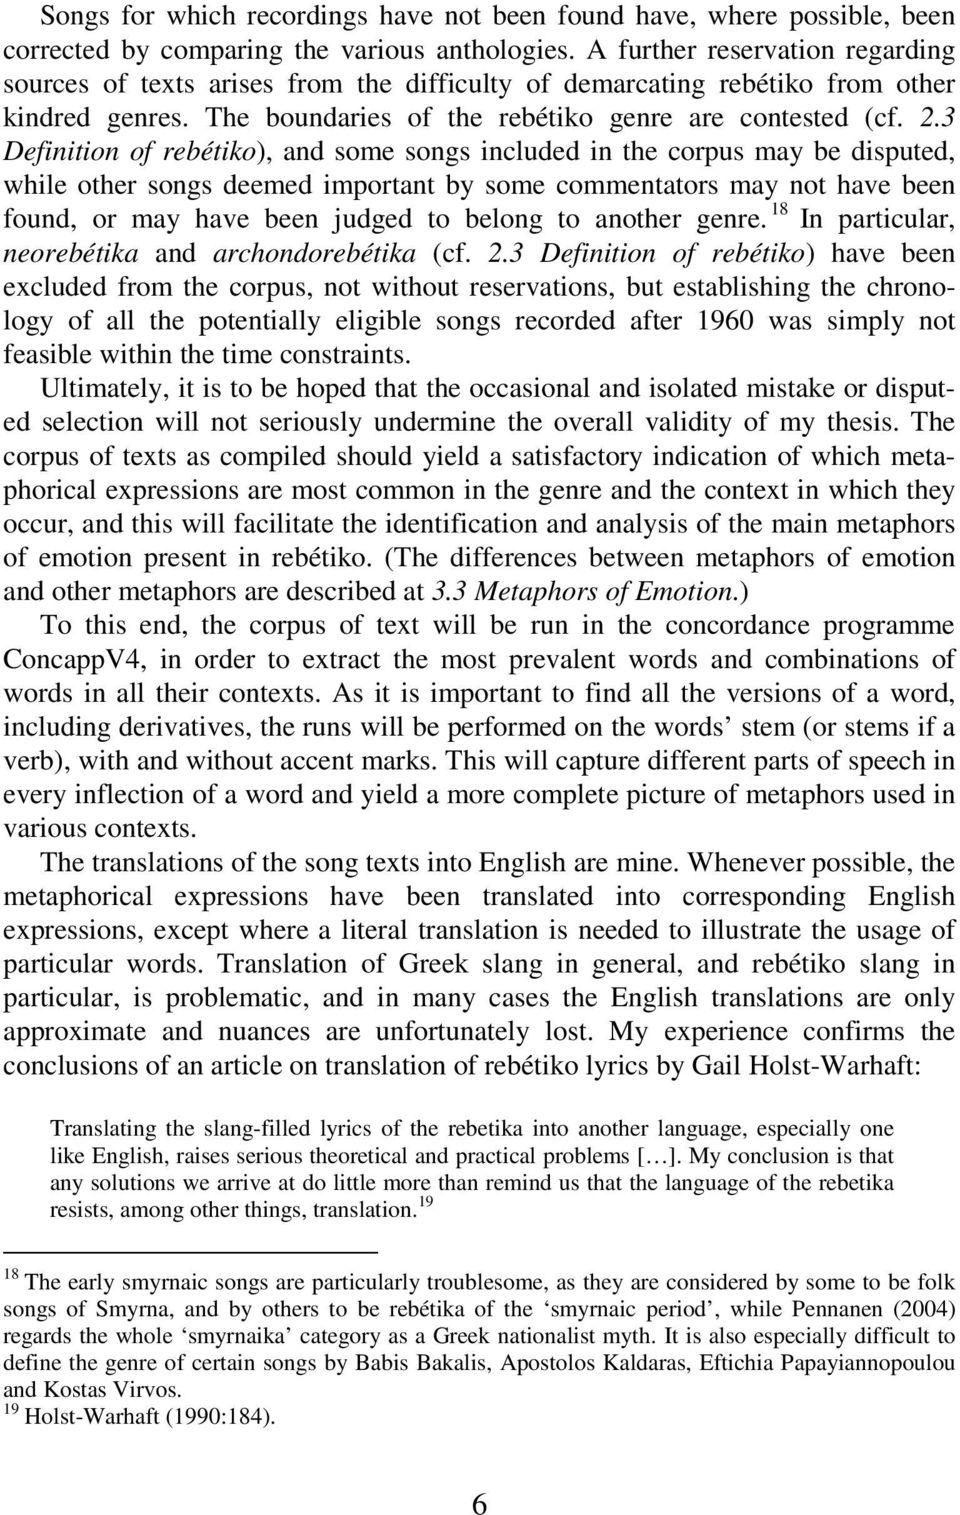 3 Definition of rebétiko), and some songs included in the corpus may be disputed, while other songs deemed important by some commentators may not have been found, or may have been judged to belong to